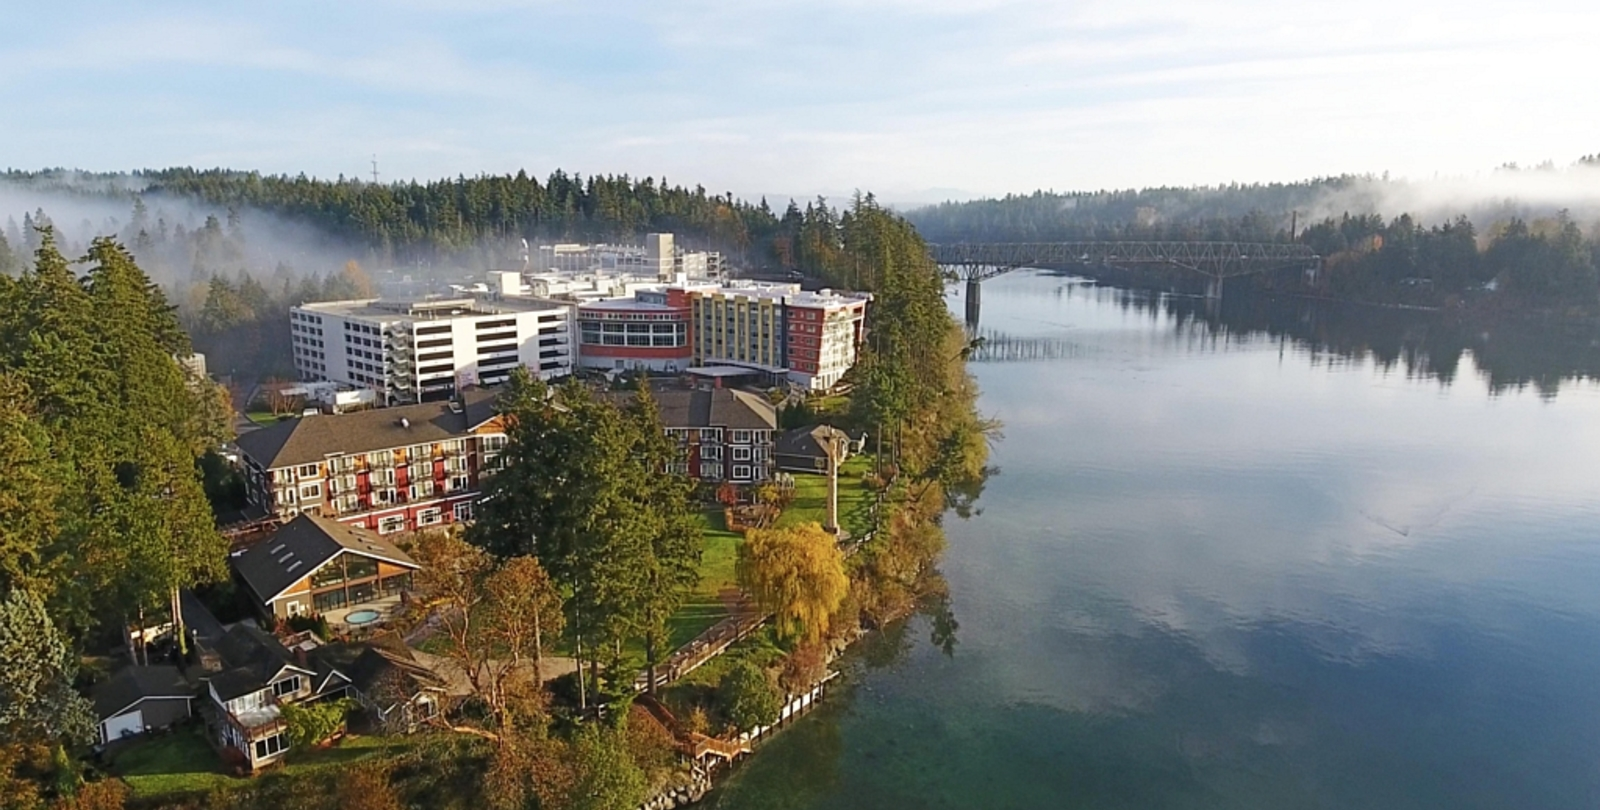 Suquamish Clearwater Resort - Sky View